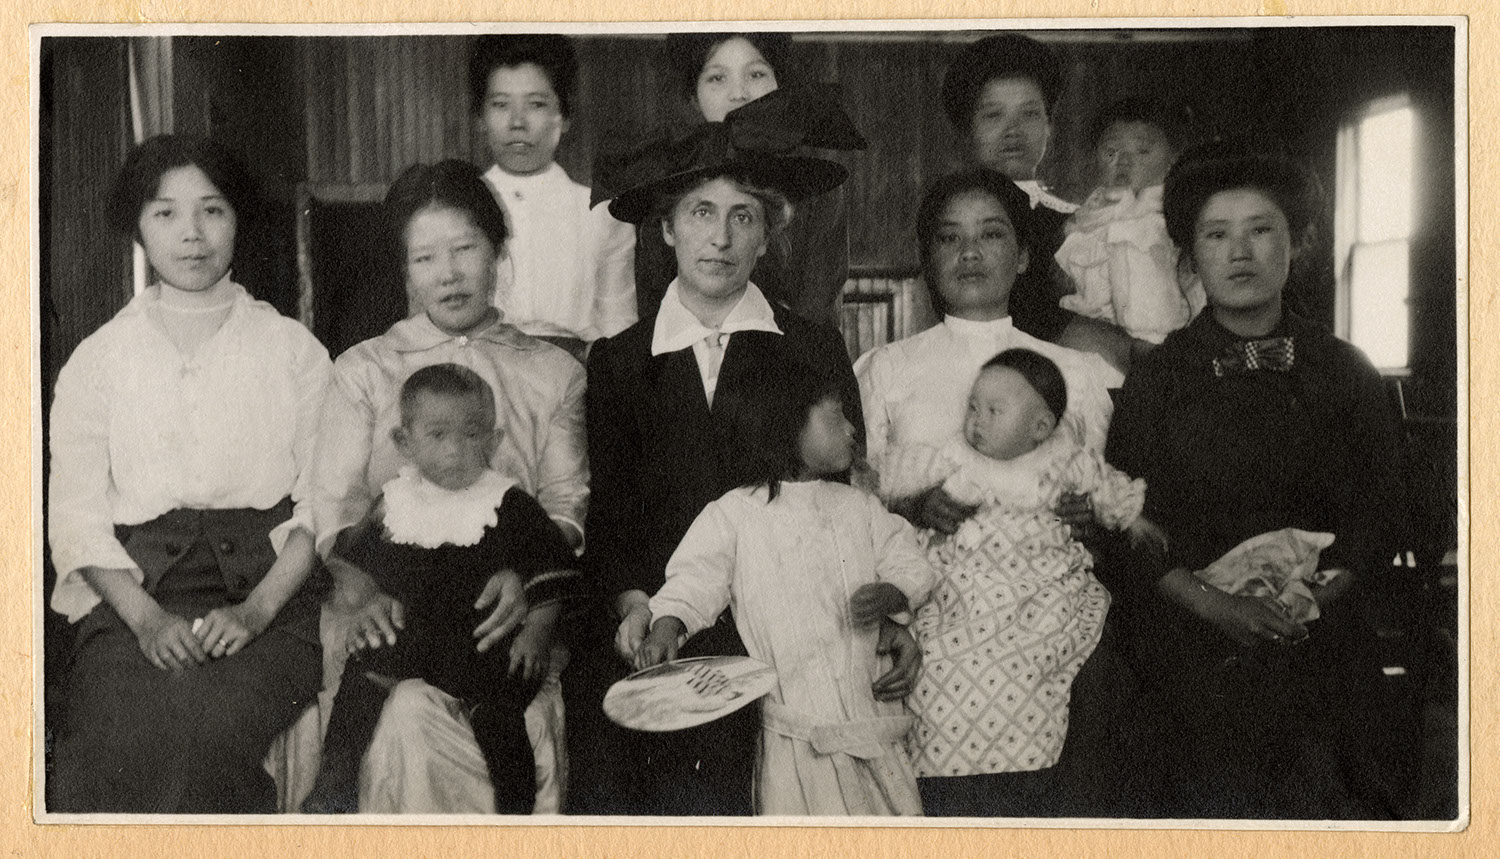 Jessie Howie with a group of women and children